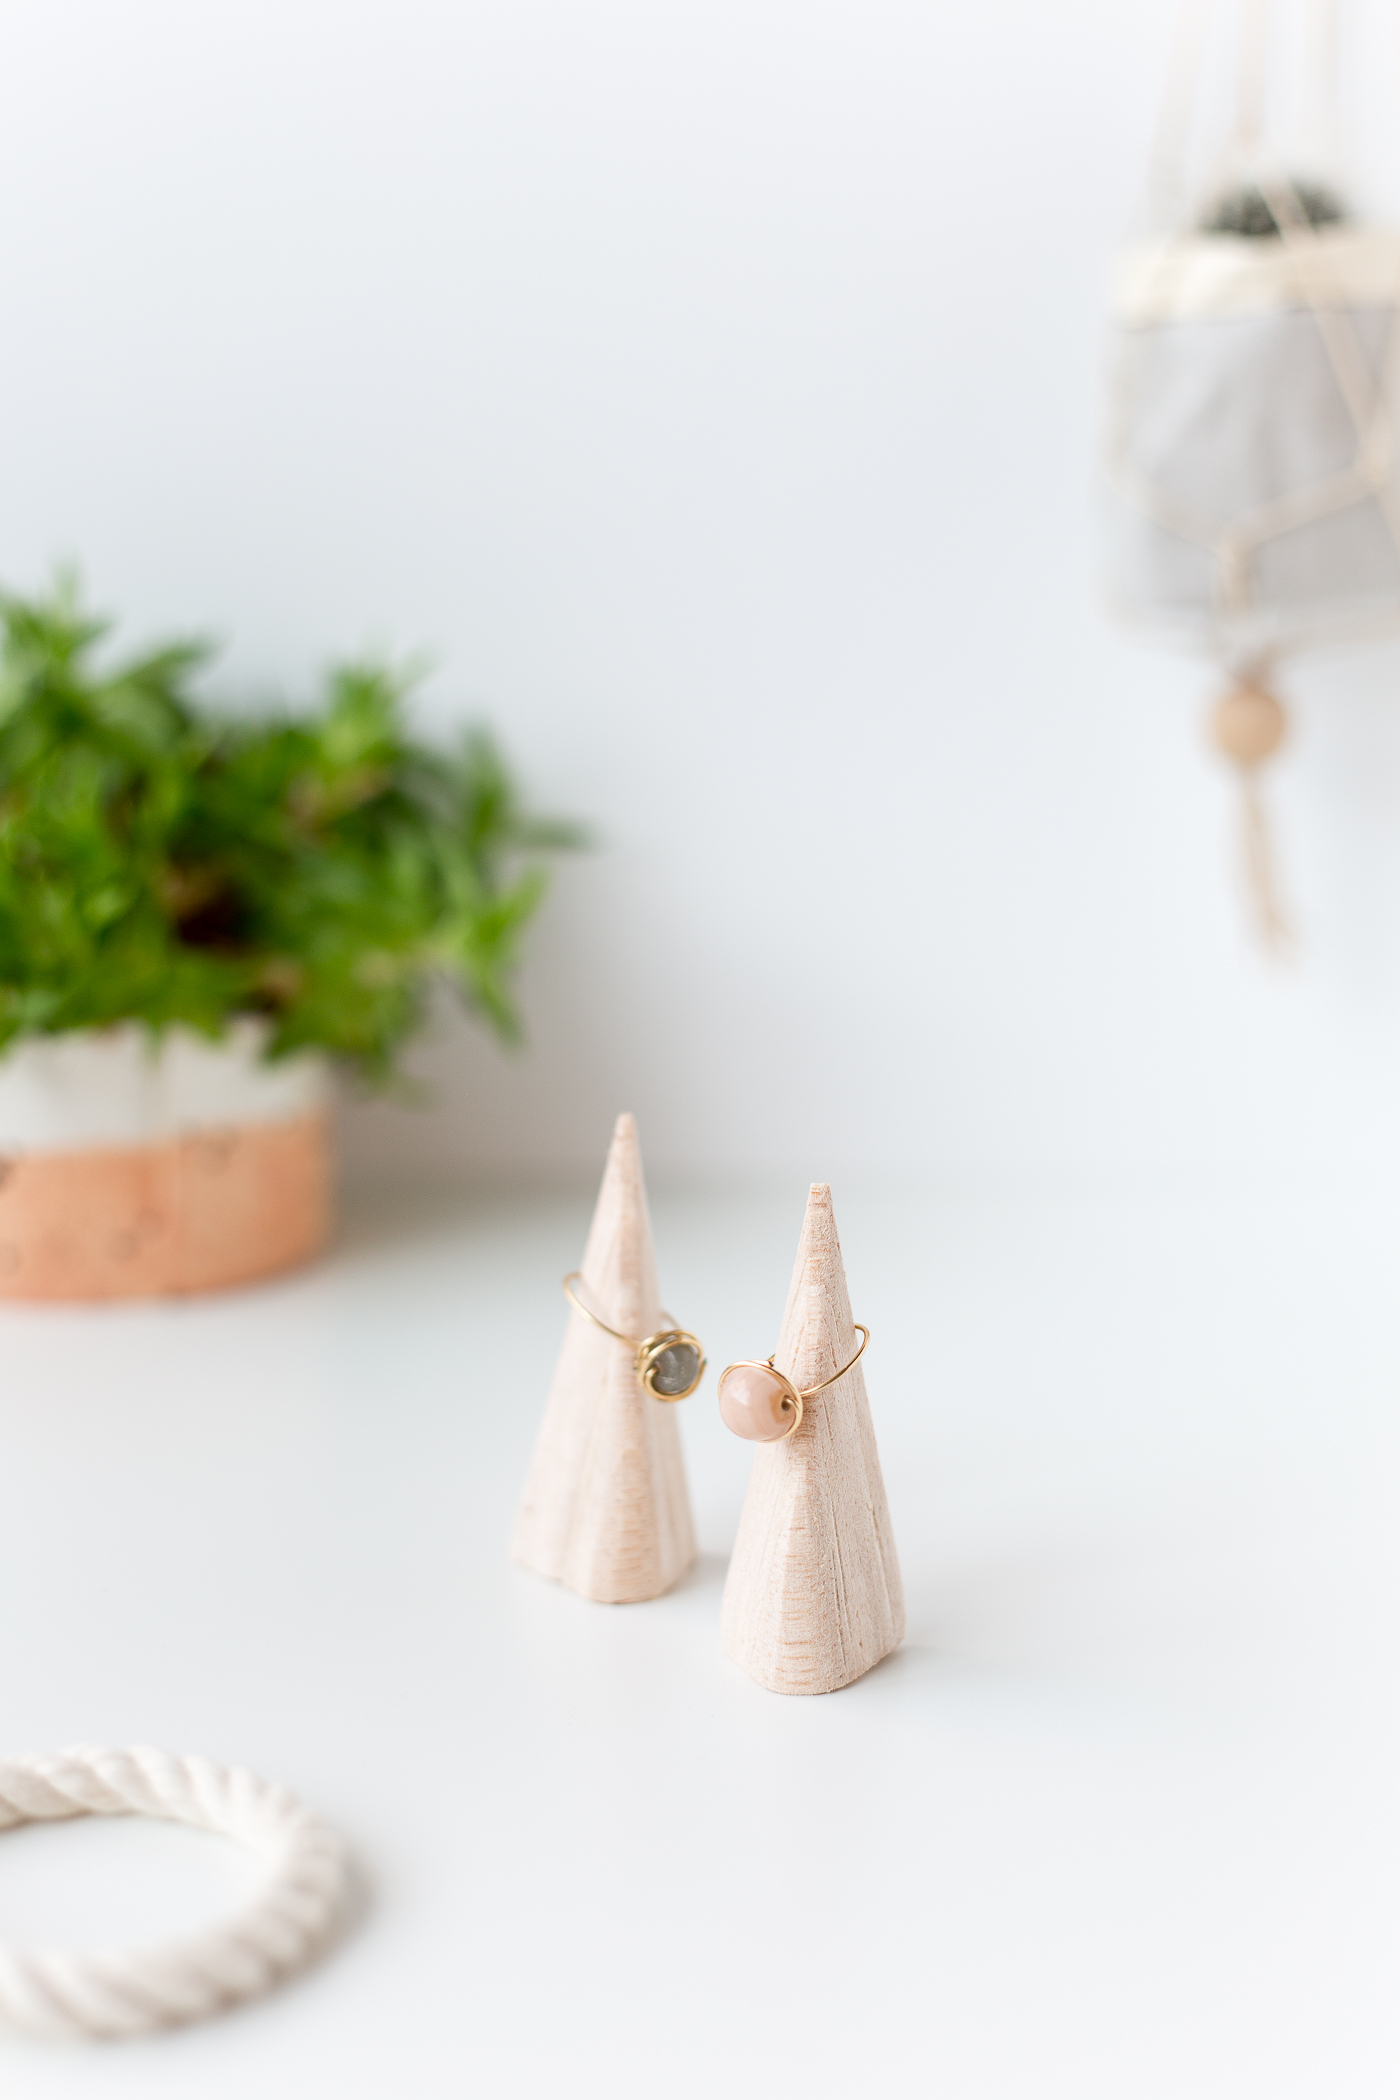 DIY Balsa Wood Ring Holders | @fallfordiy-13